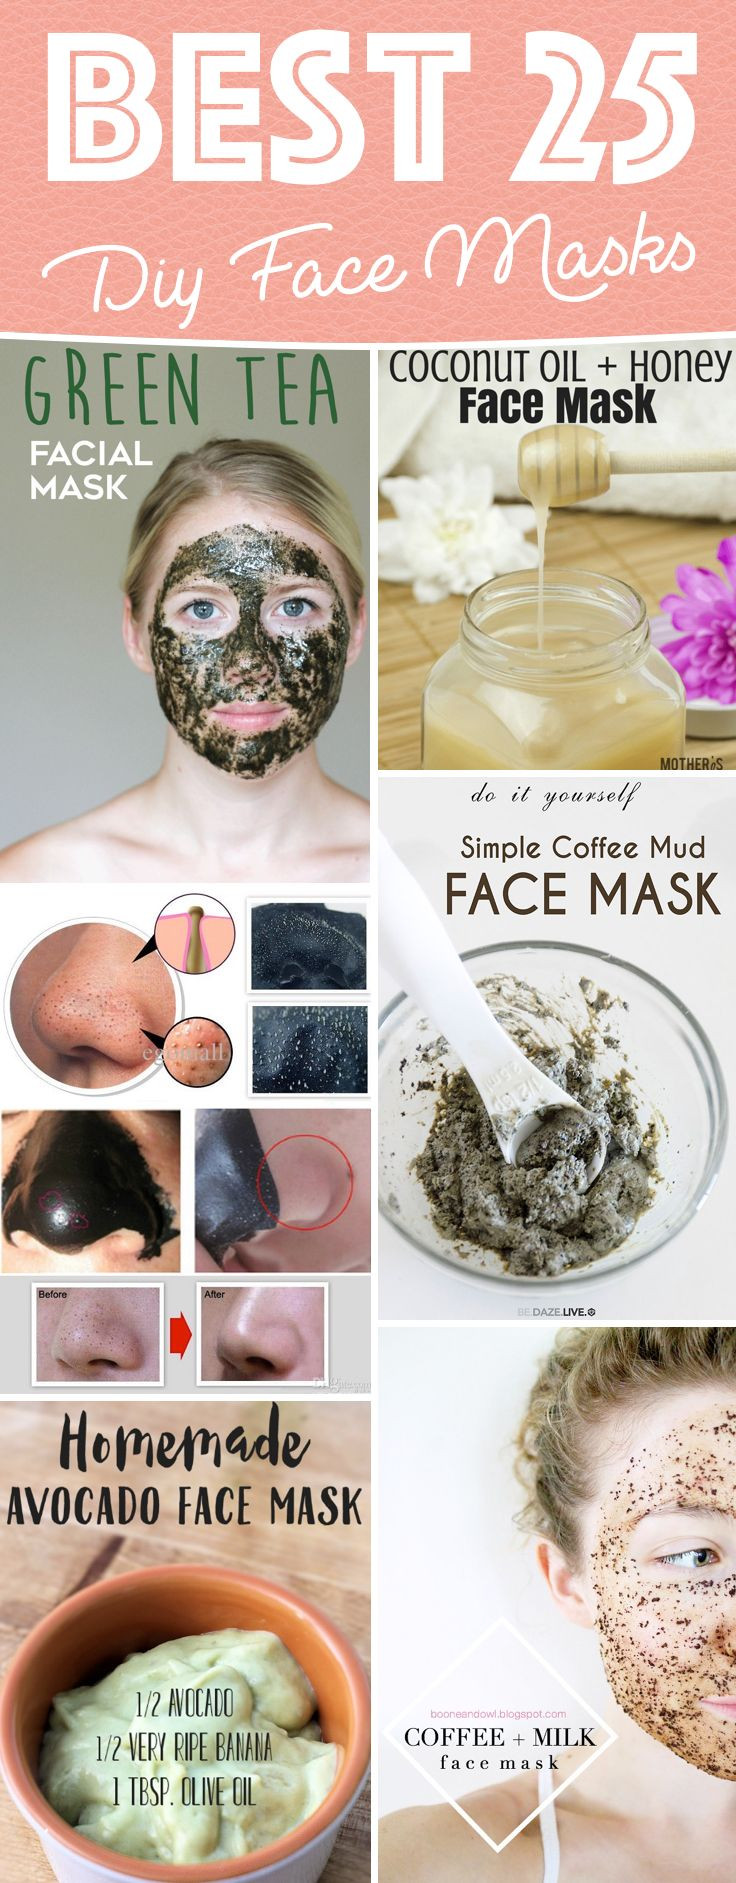 DIY Face Mask For Pimples  25 best ideas about Homemade Face Masks on Pinterest